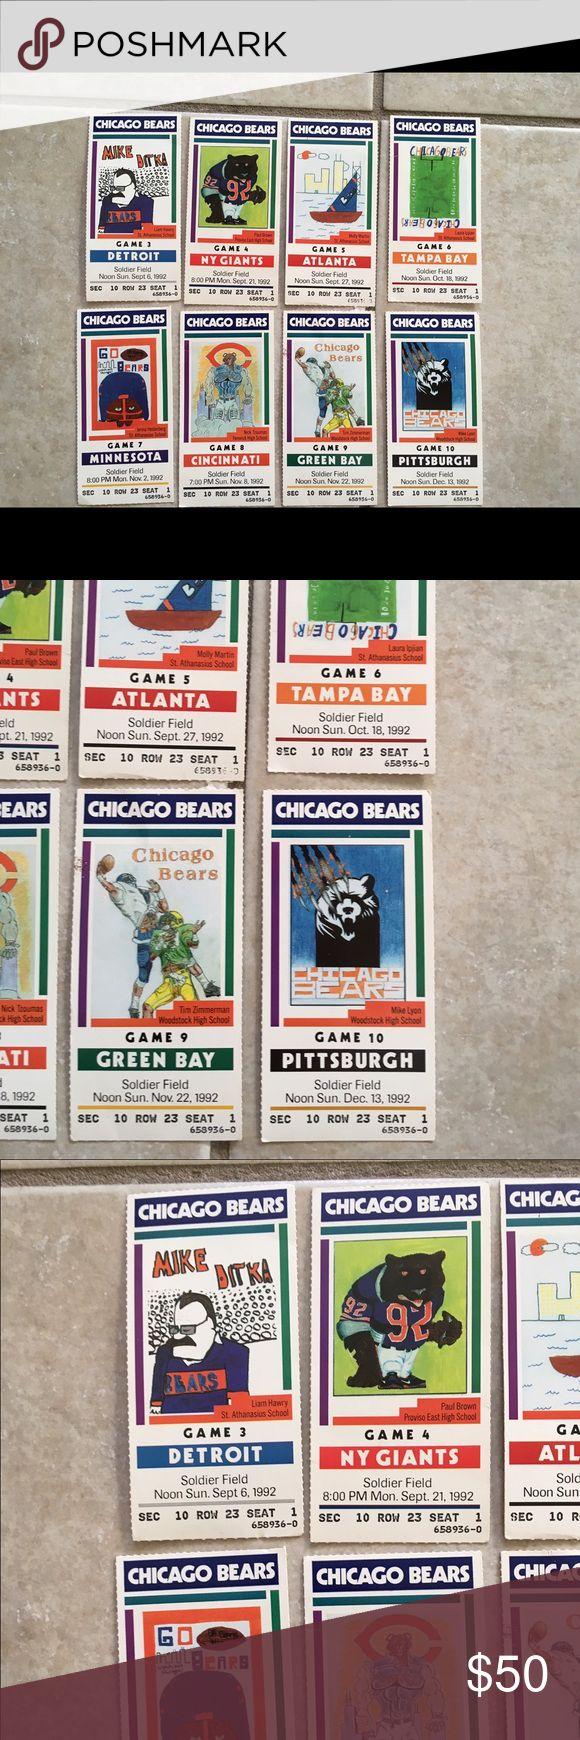 8 classic Chicago Bears 1992 season stubs RARE. 9/6/1992 vs Detroit, MNF 9/21/1992 NY Giants, 9/27/1992 Atlanta, 10/18/1992 Tampa Bay, MNF 11/2/1992 vs Vikings, 11/8/1992 vs Cincinnati, 11/22/1992 vs Green Bay packers, 12/13/1992 vs steelers today only-  Just Reduced to lowest price possible.  You're getting a great Accessories